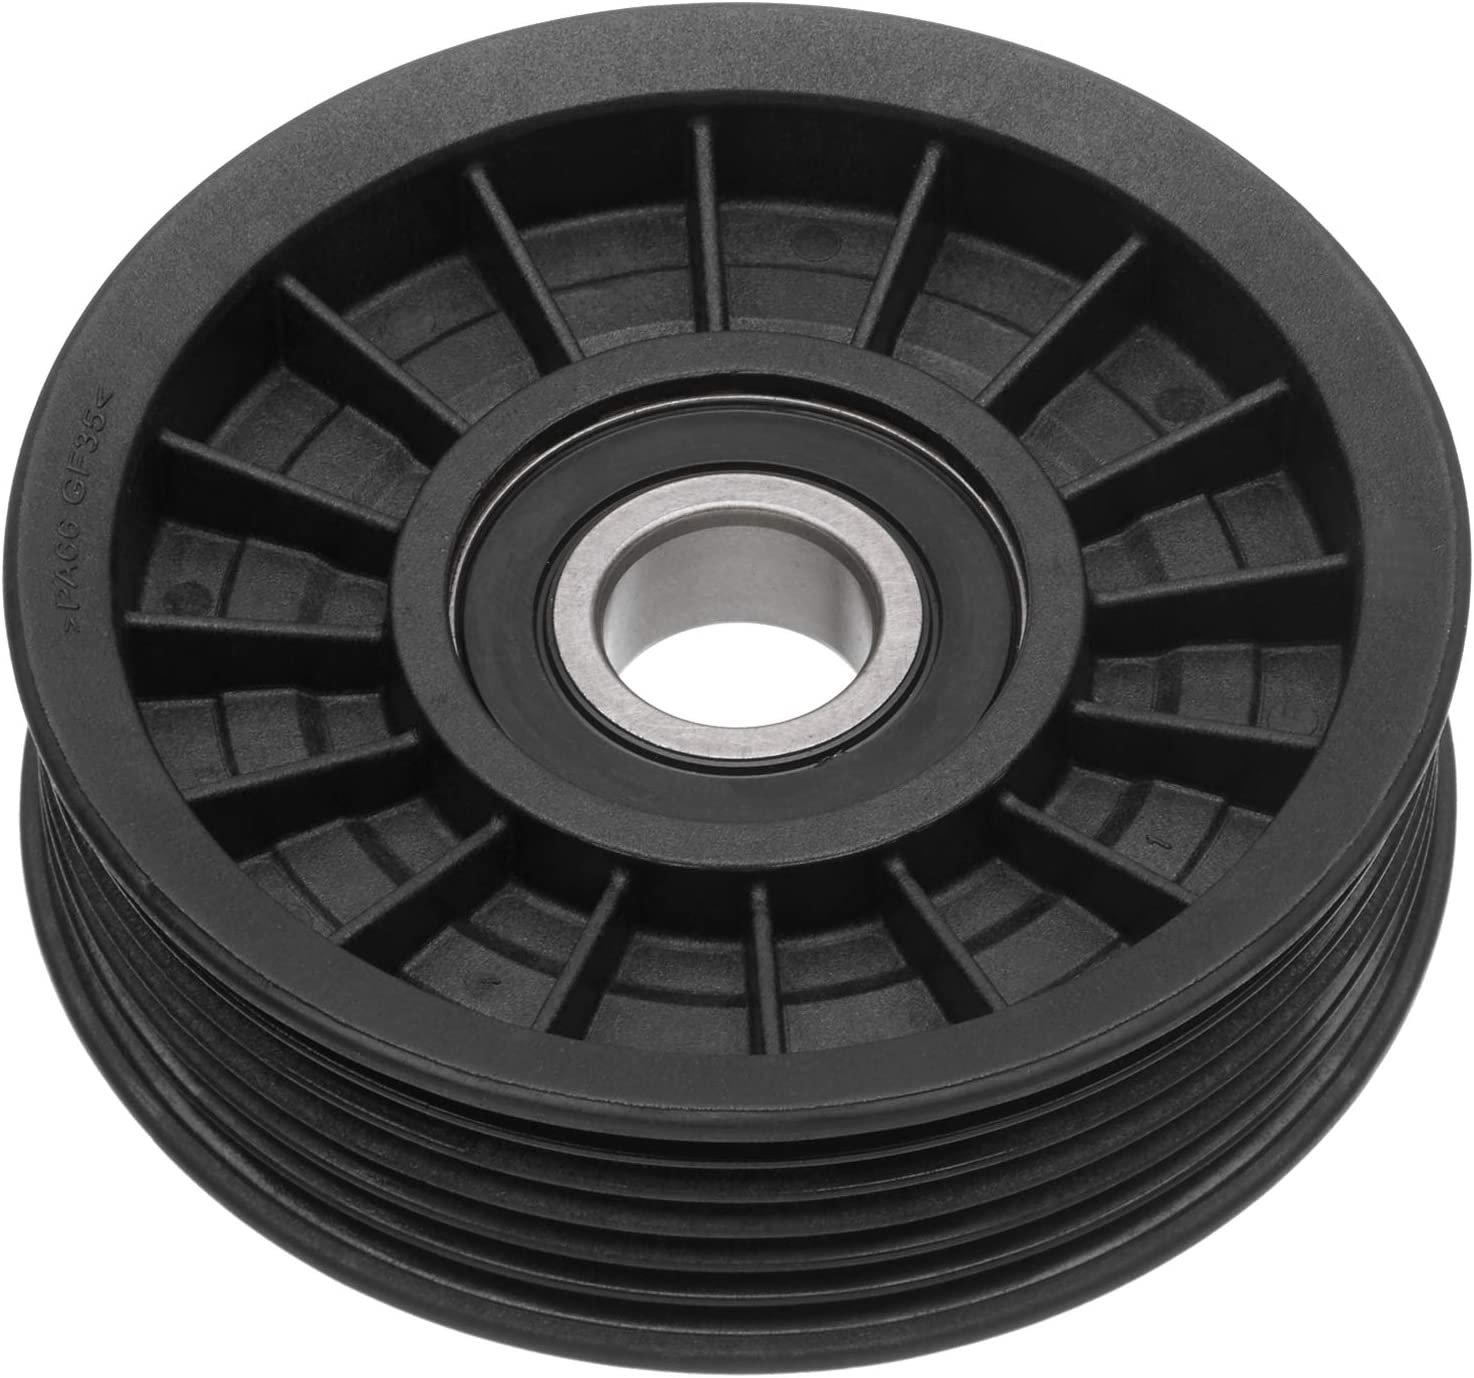 ACDelco Max 86% OFF Professional Financial sales sale 38019 Idler Pulley Flanged